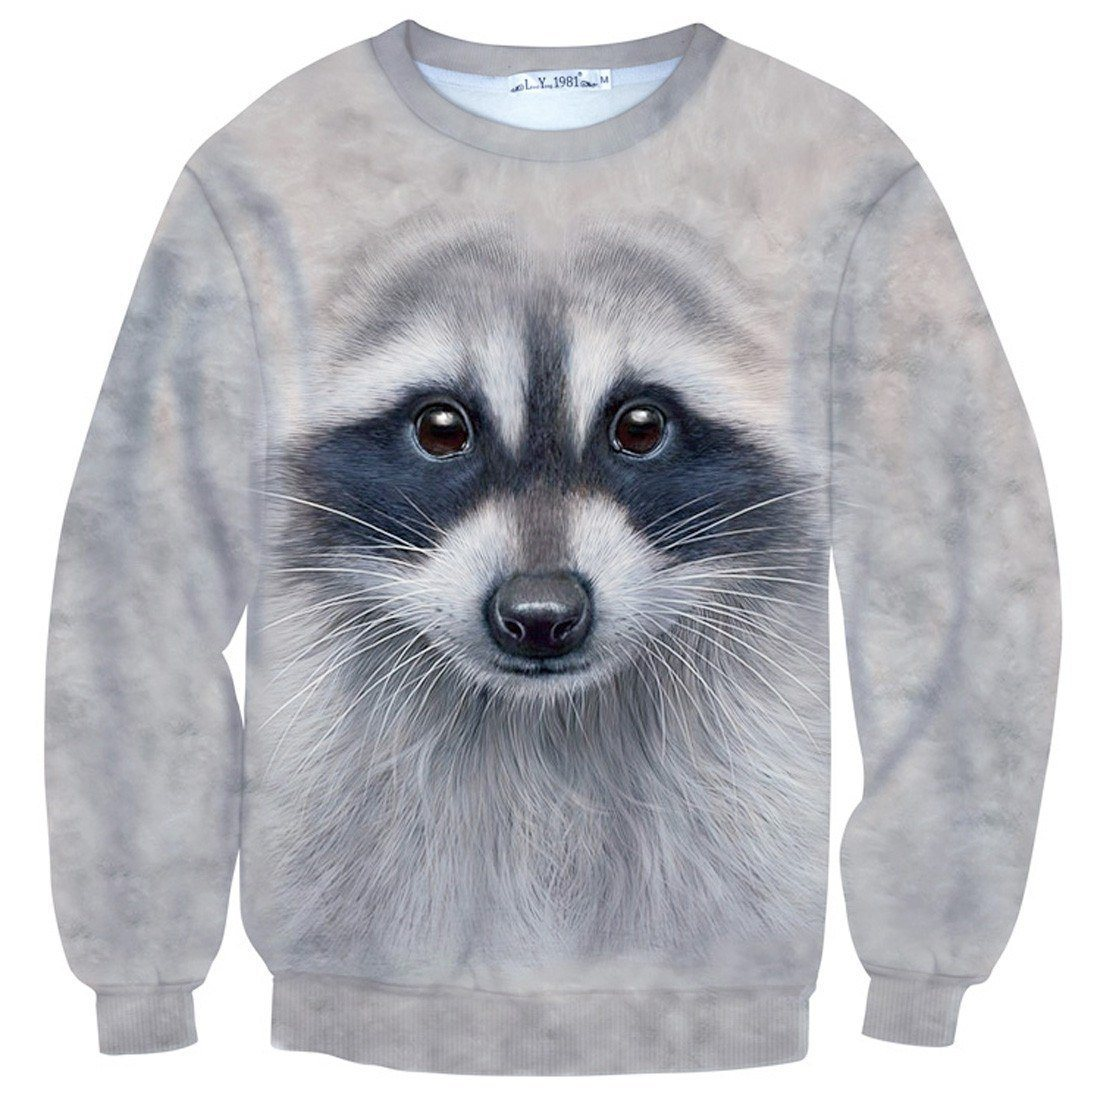 realistic raccoon face all over print unisex sweater u2013 dotoly